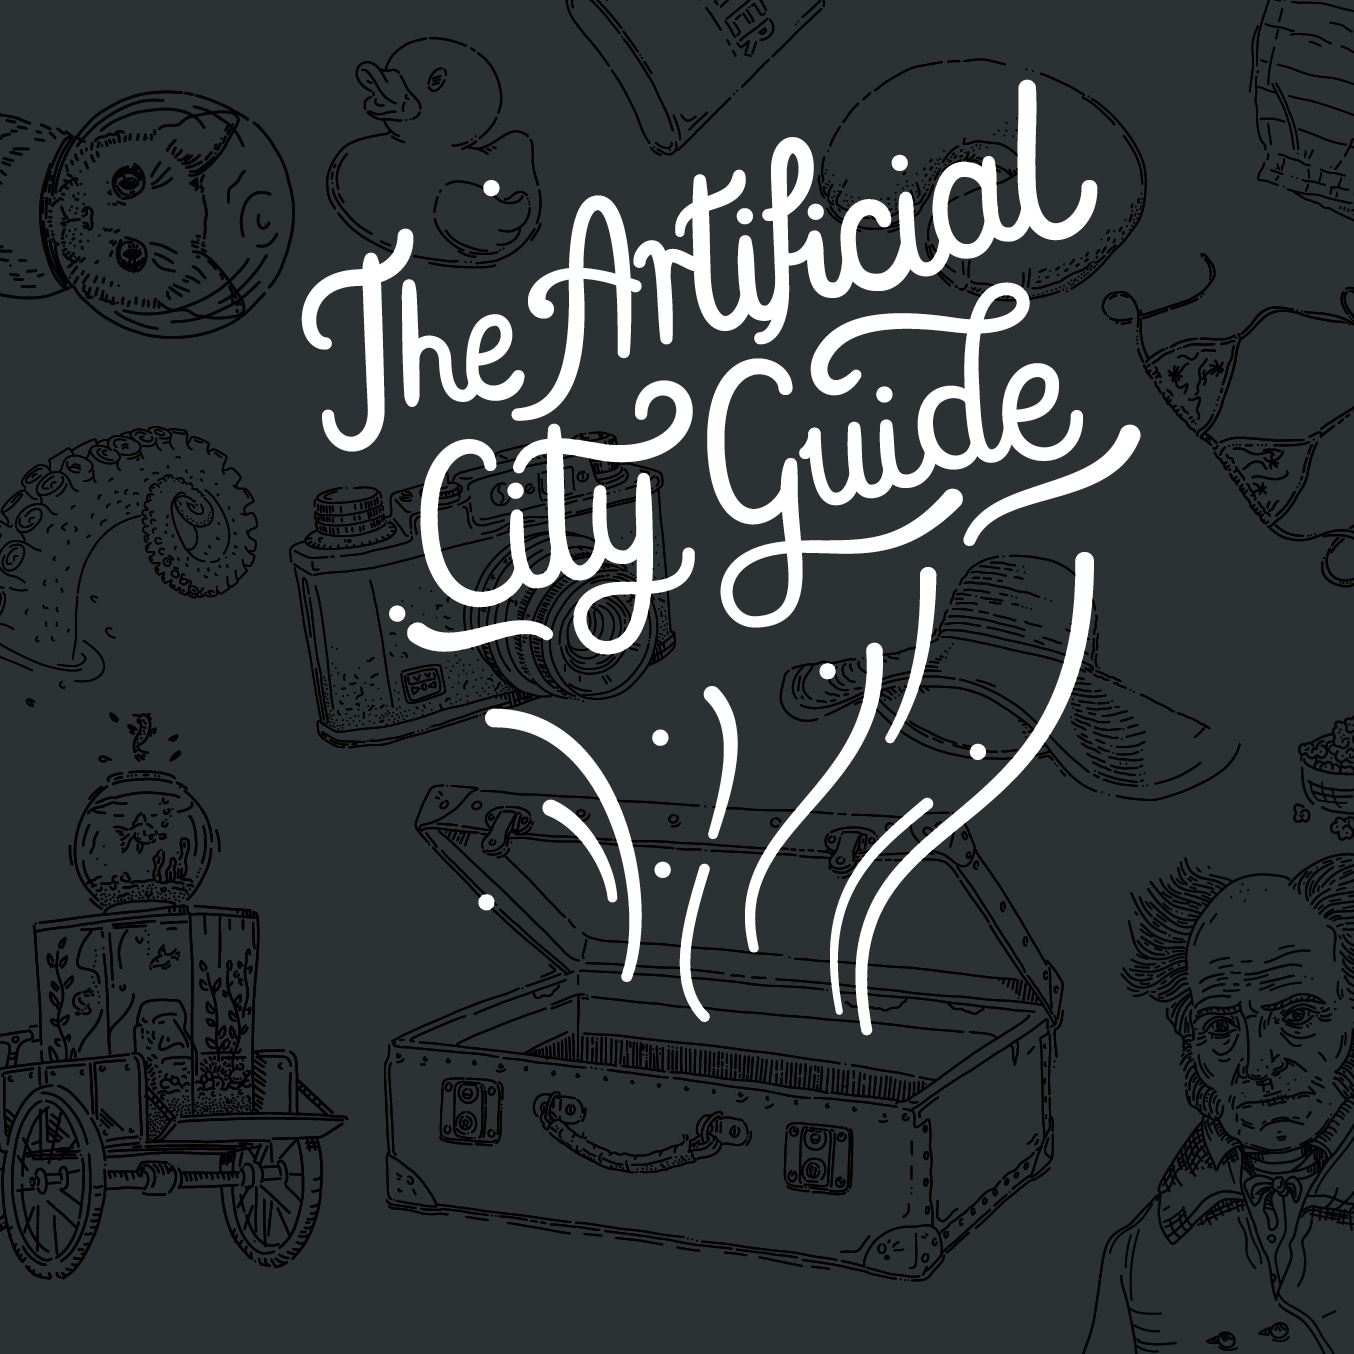 Guide Book Illustrations - Client: The ArtificialFor The Artificial's holiday gift in 2017 we decided to focus on the diversity of our international group and make a travel guide with the cities we lived in. Each one of us described one city and togehter we designed the layout, drew the illustrations, and chose photos from our personal archives. I had the pleasure to letter the title for book's cover. Apart from being a physical book, our guide is also available online: theartificial.com/cityguide/